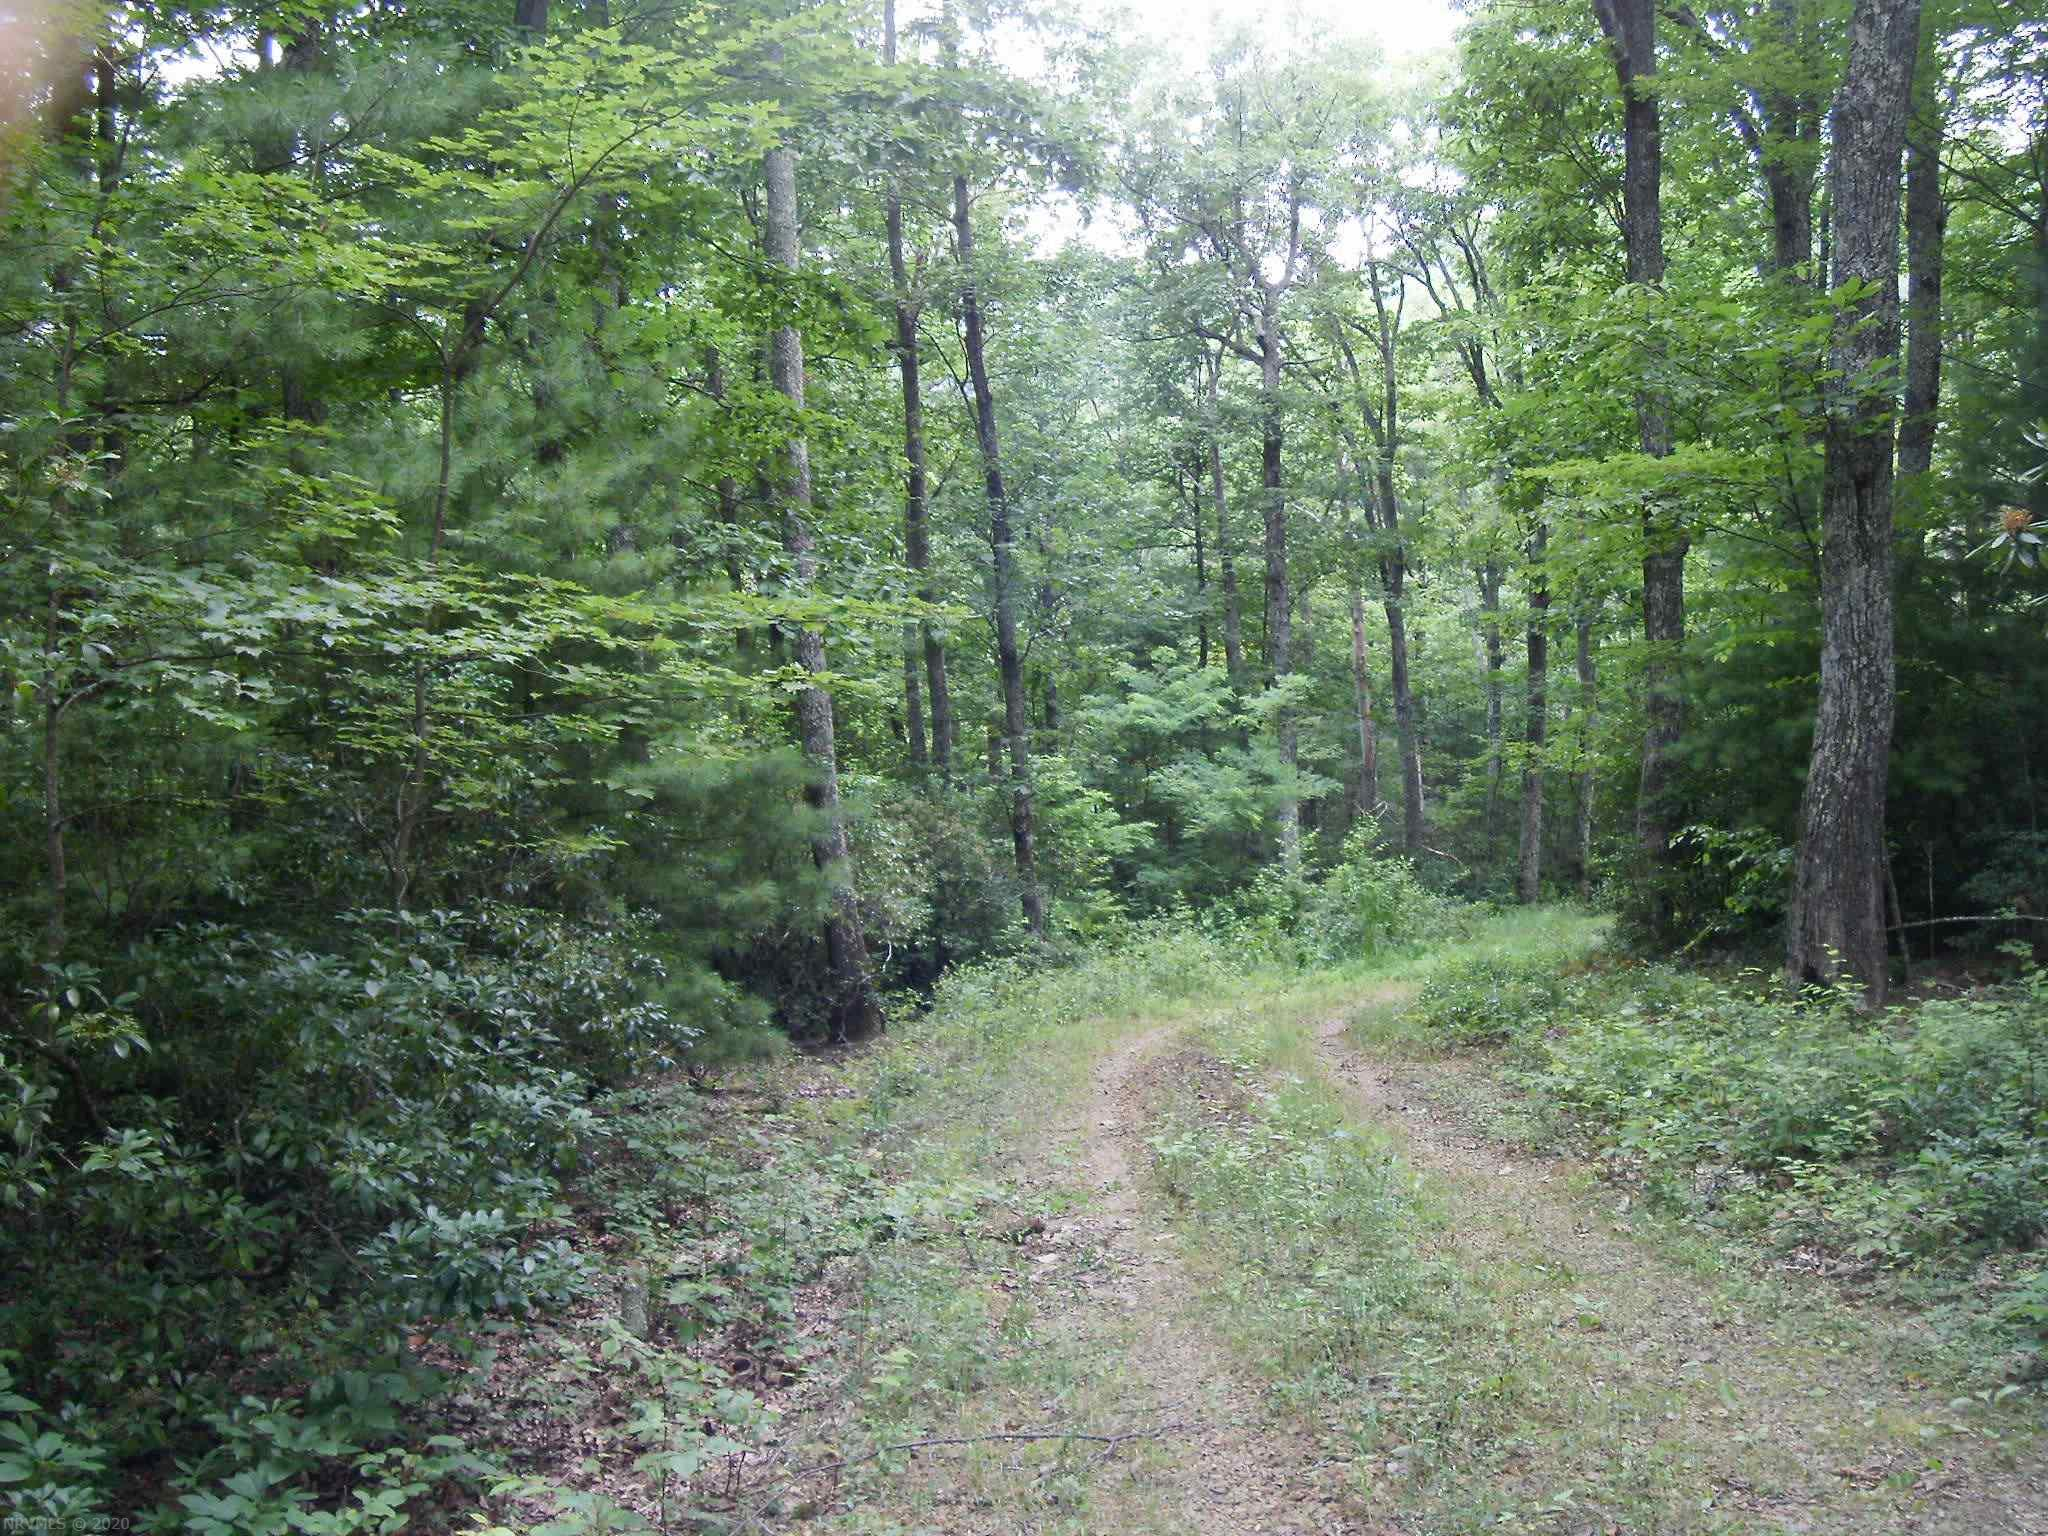 Enjoy privacy and country living close to town. Just 2 minutes from the Blue Ridge Parkway!  Less than 15 minutes to the town of Floyd.  2.41 acres of mostly level wooded land.  A driveway has already been installed and the parcel has been previously evaluated for septic and is clearly marked.  Beautiful mature hardwood trees, Rhododendrons and Mountain Laurels make this property a great choice for your home or rural Floyd retreat.